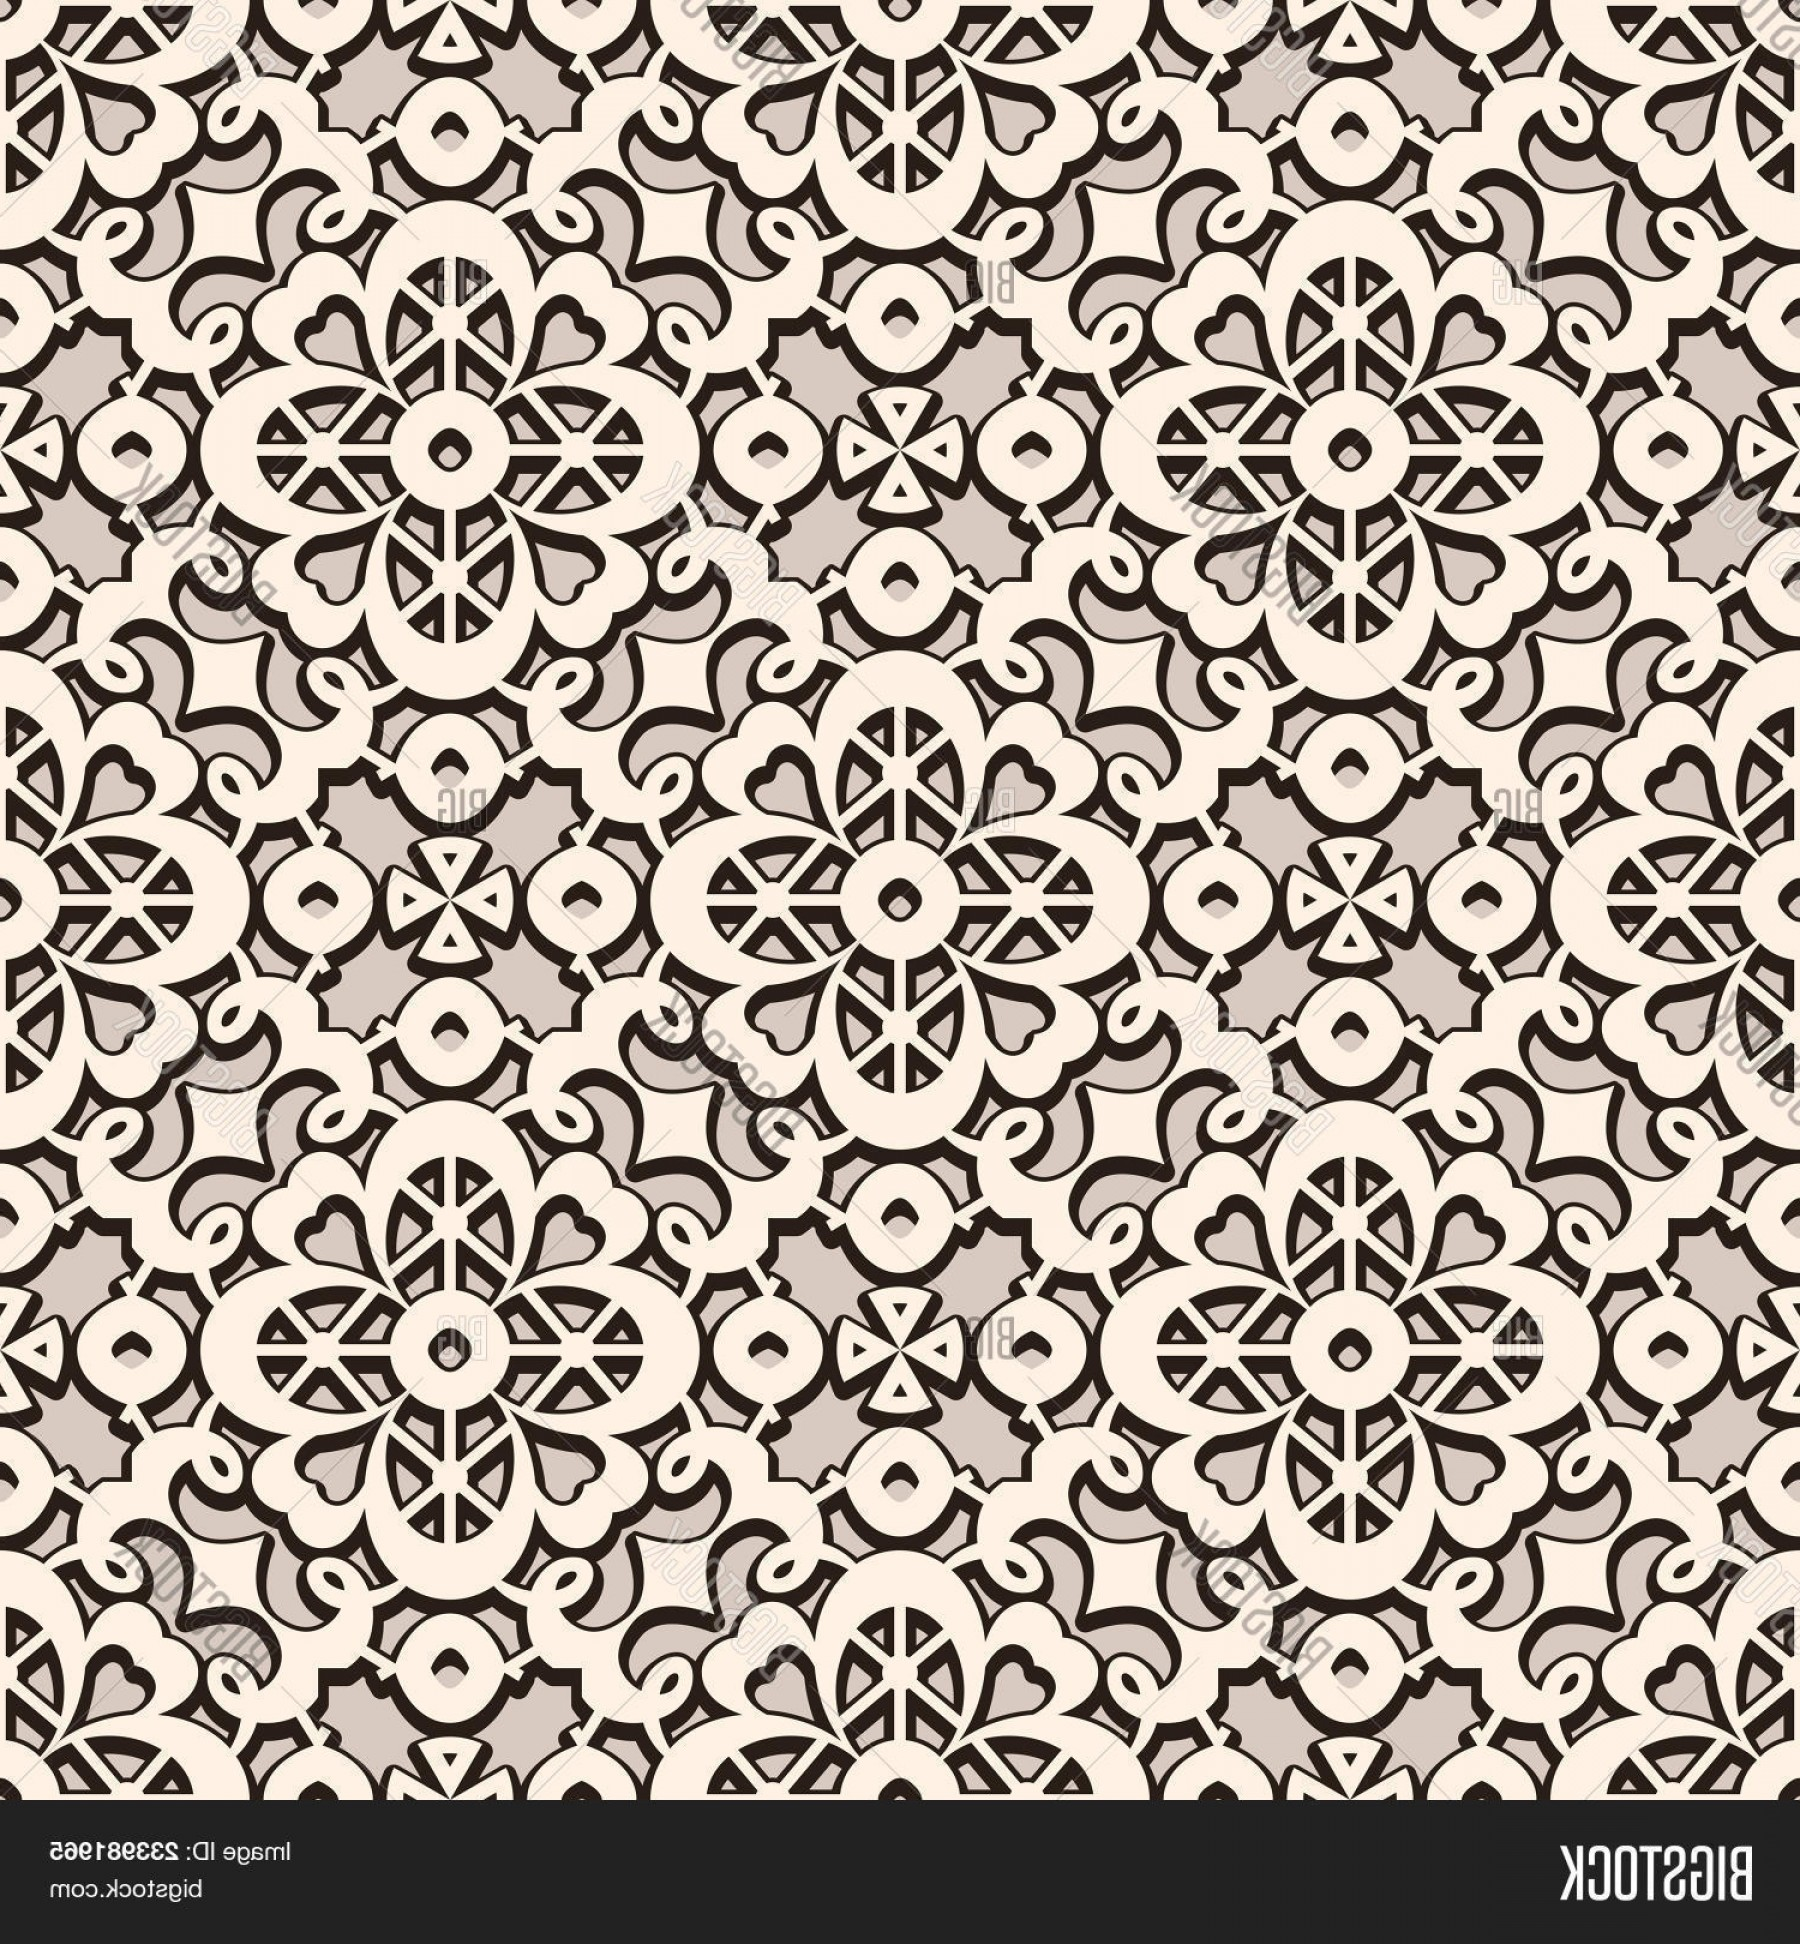 Tulle Black Lace Pattern Vector: Stock Vector Vintage Lace Ornamentc Elegant Tulle Texturec Vector Seamless Pattern